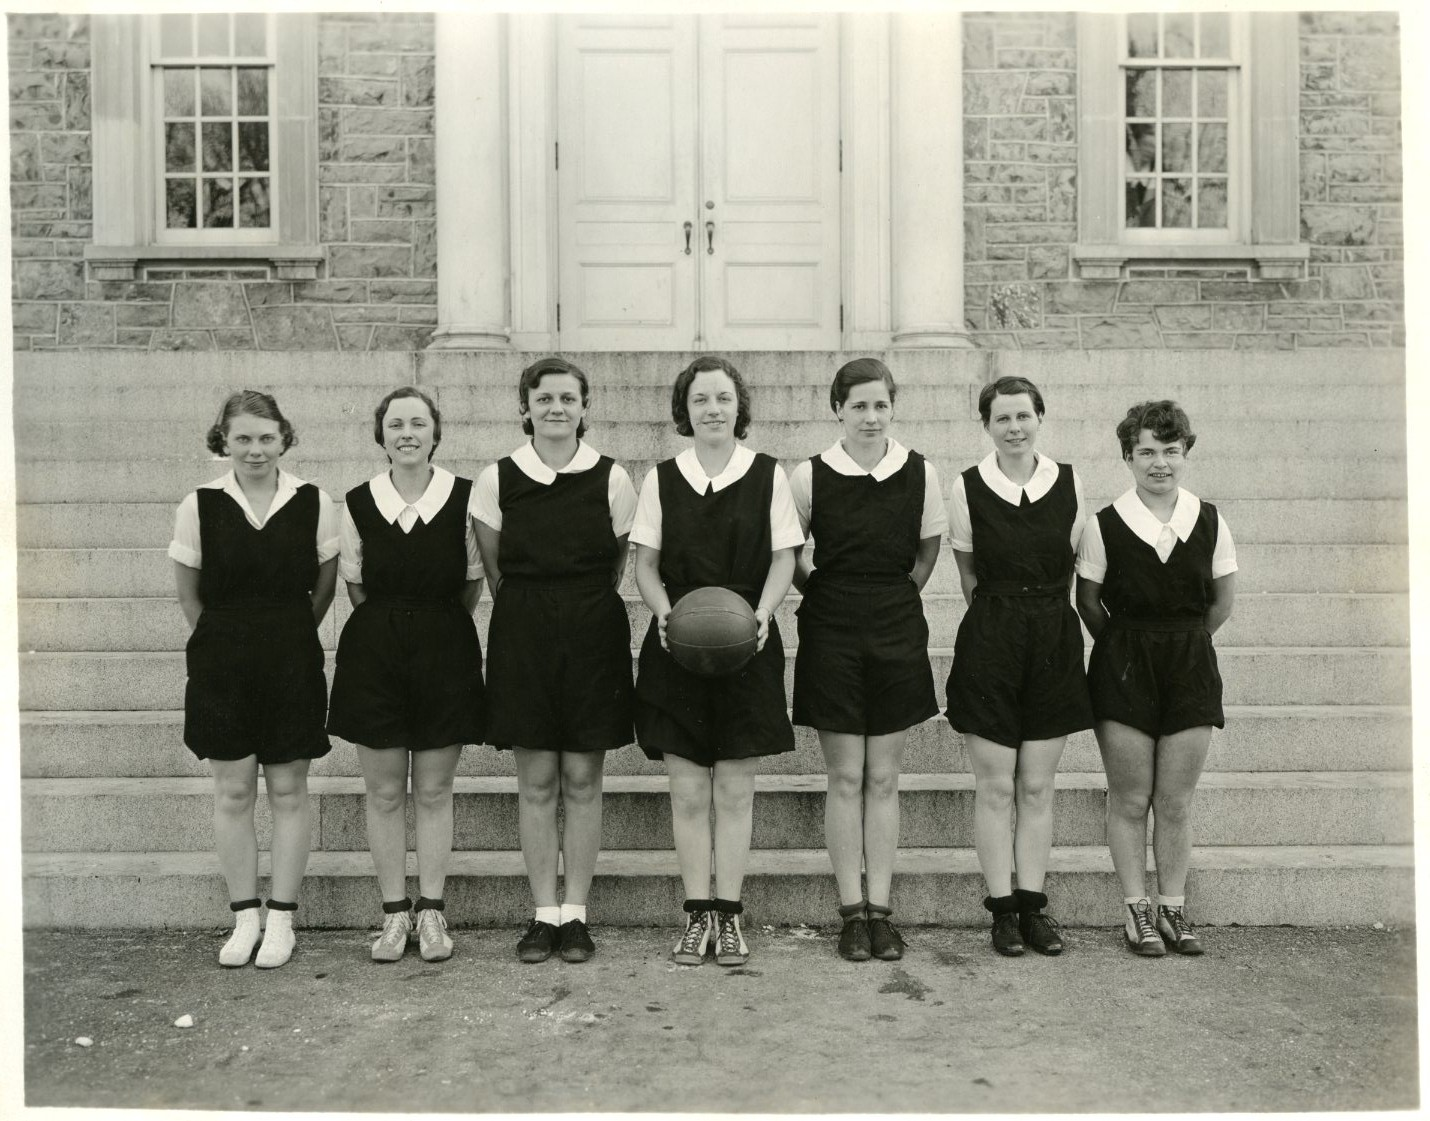 Women's Basketball team, 1932